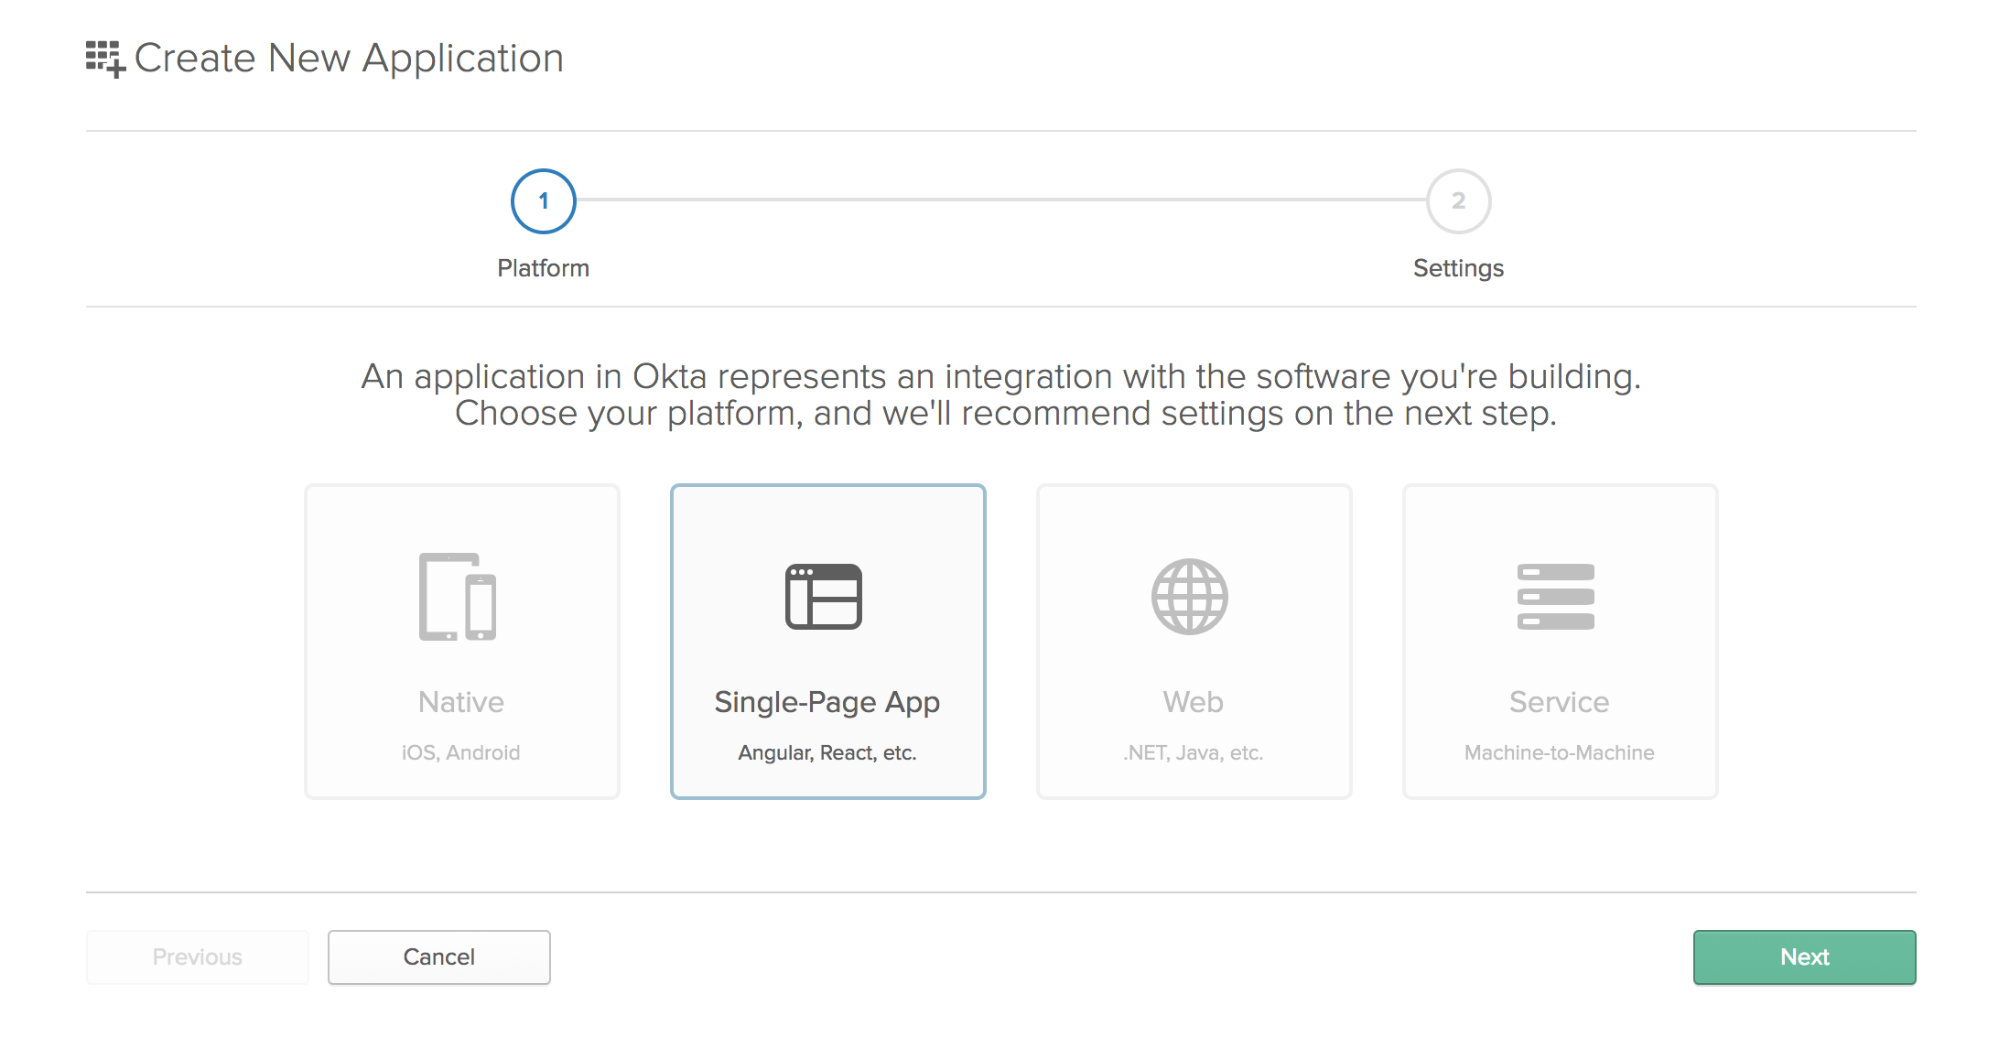 Create a new Single Page Application in Okta